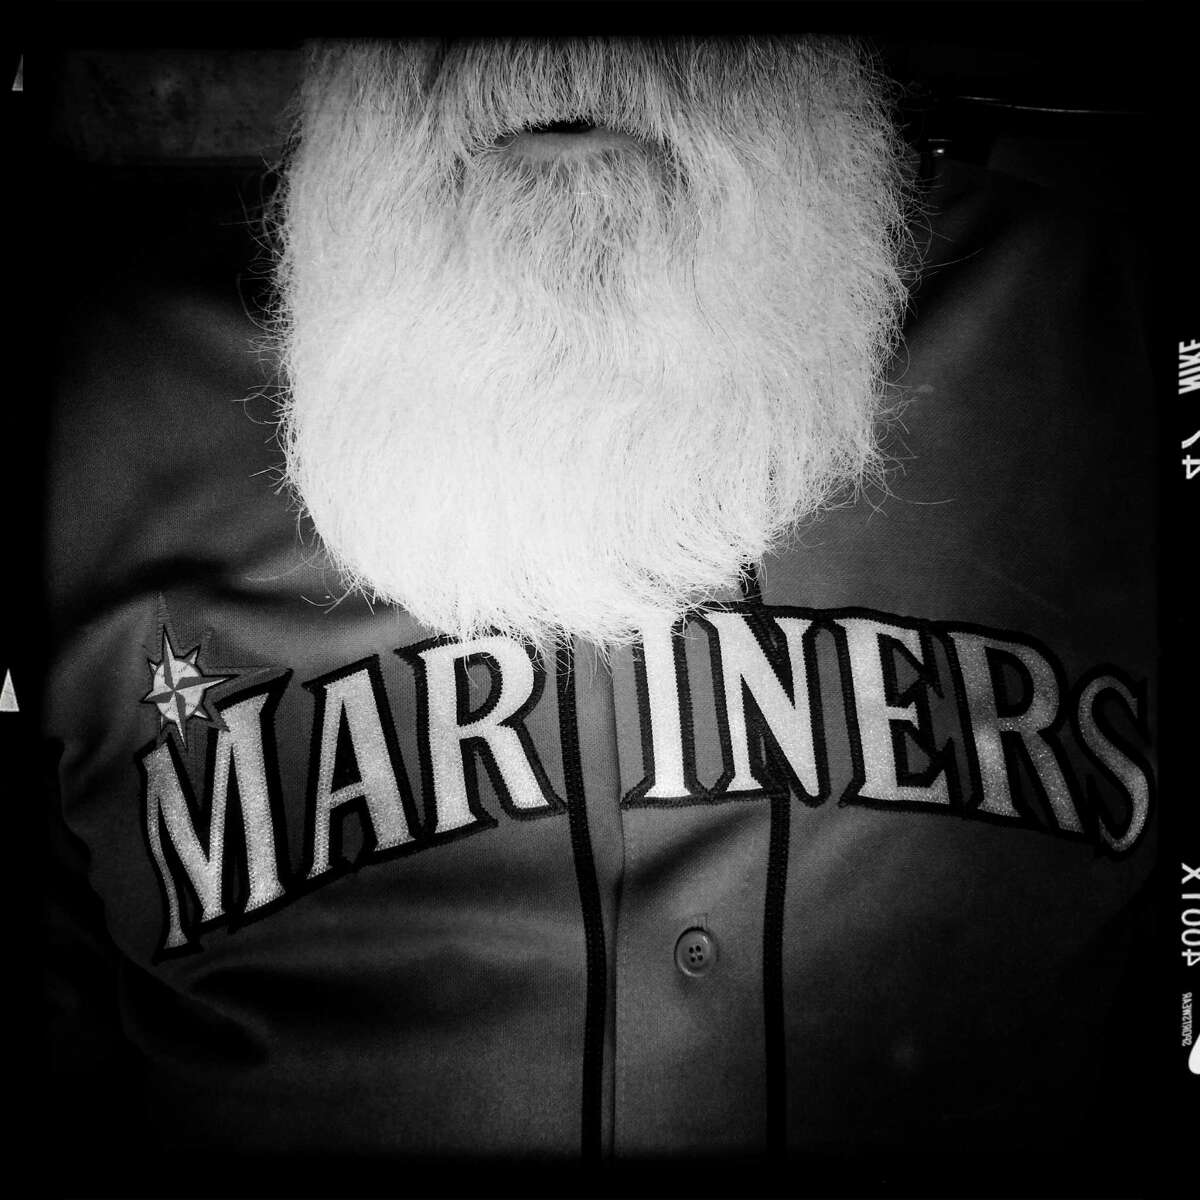 Jim Hunt, of Renton, Wash., poses for a portrait in his jersey during Seattle Mariners Opening Day Monday, April 6, 2015, at Safeco Field in Seattle, Washington. All images shot on an iPhone 5S and processed in-phone with the Hipstamatic application.